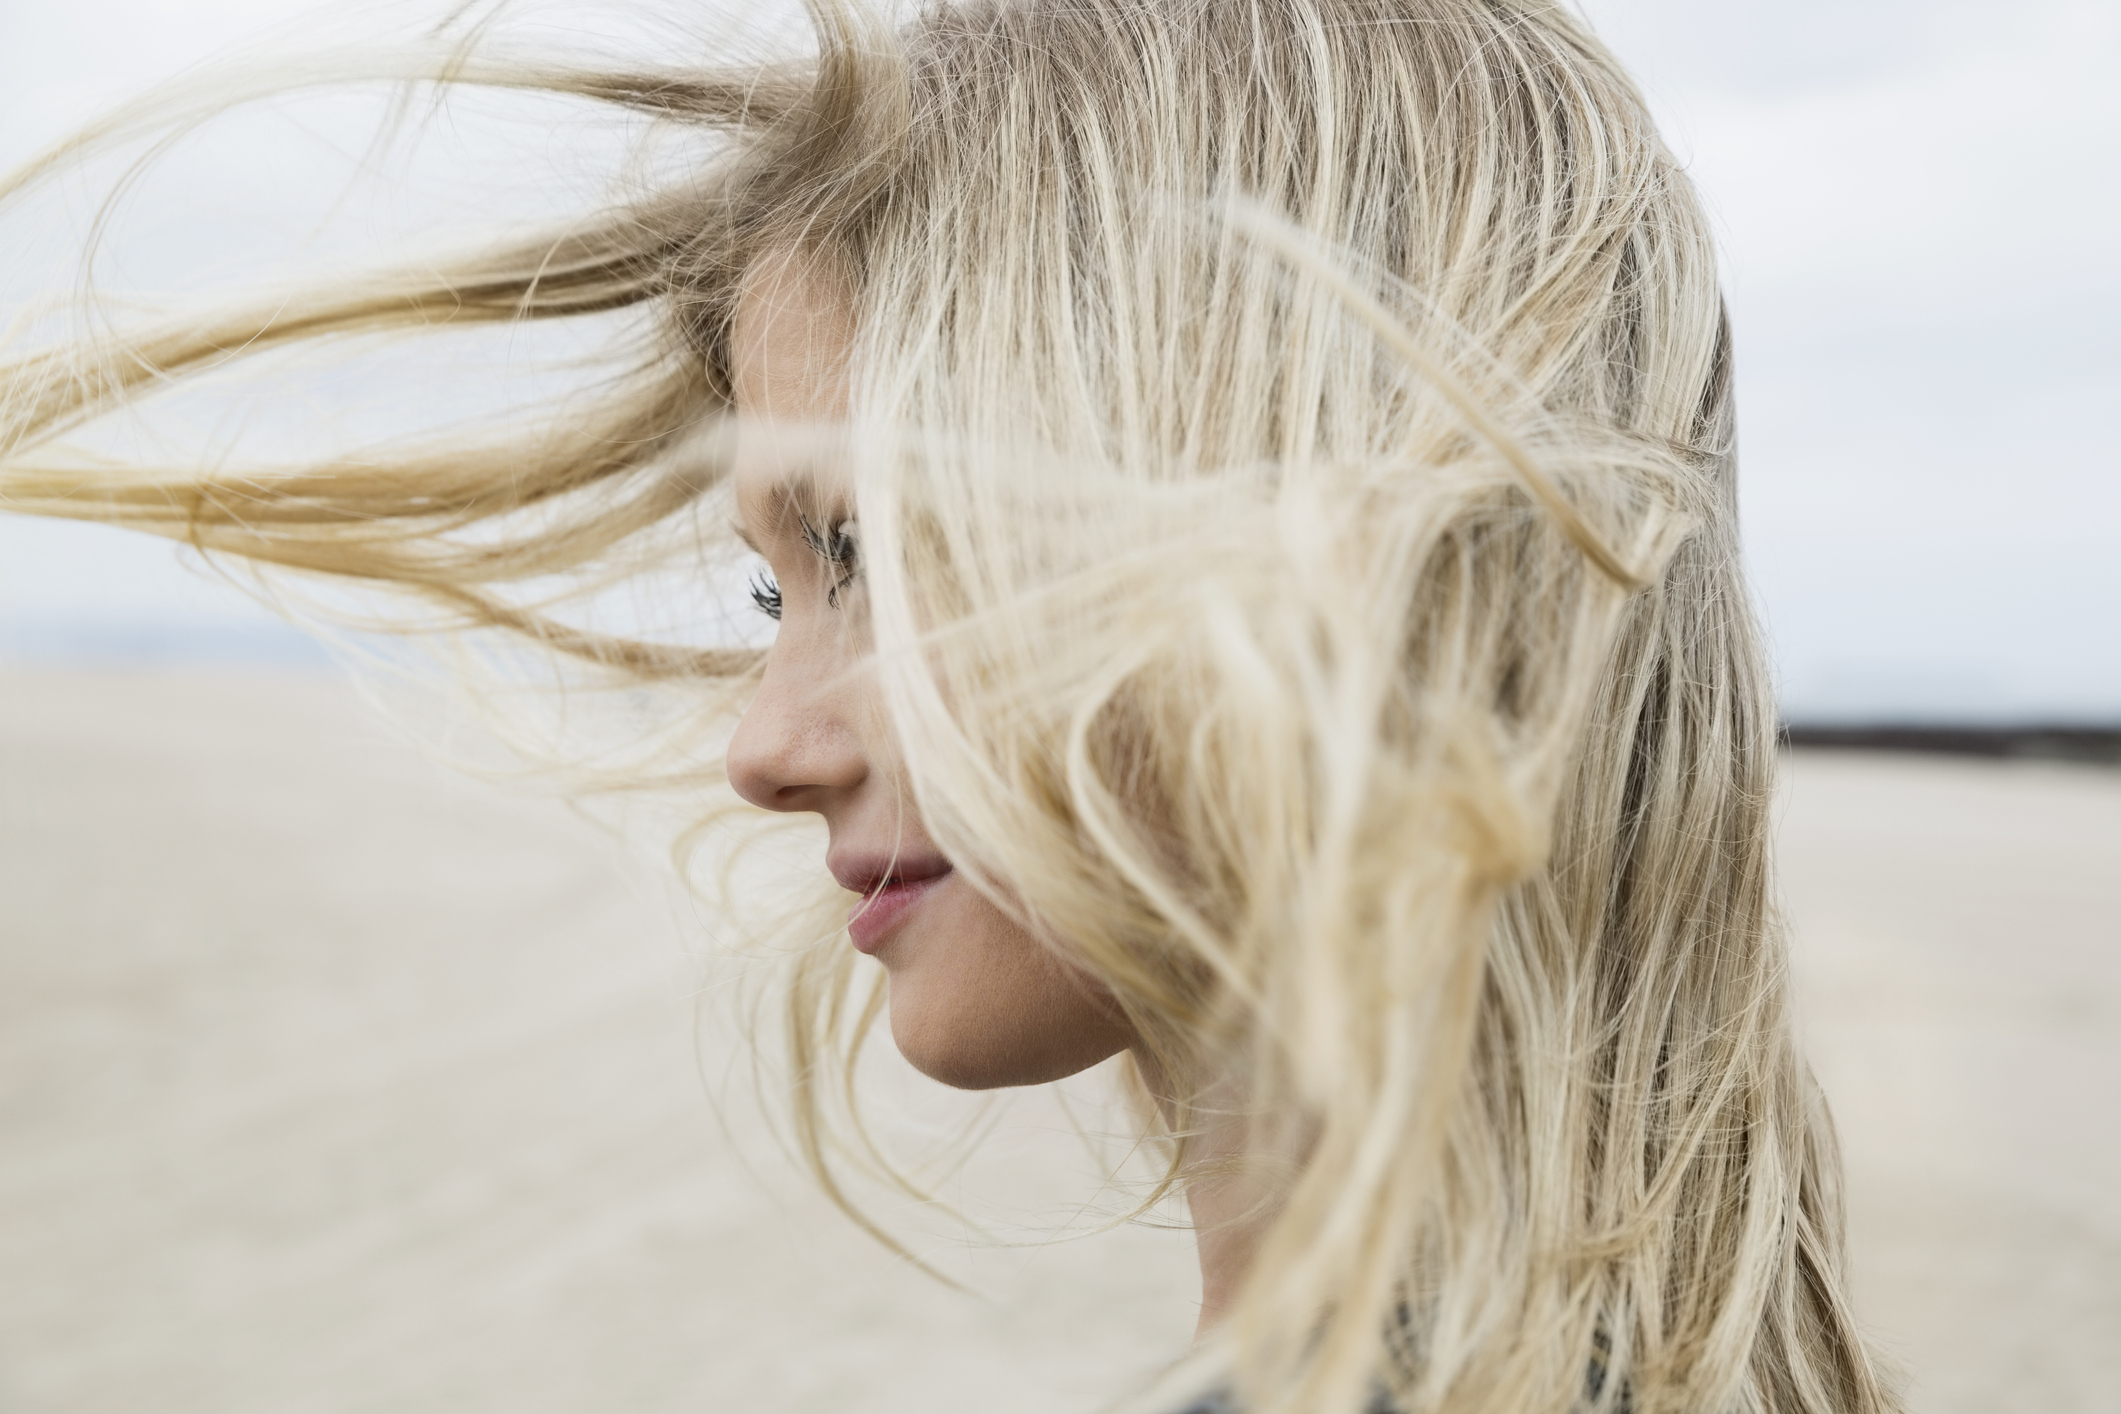 wind-blowing-blonde-hair-of-woman-at-beachjpg